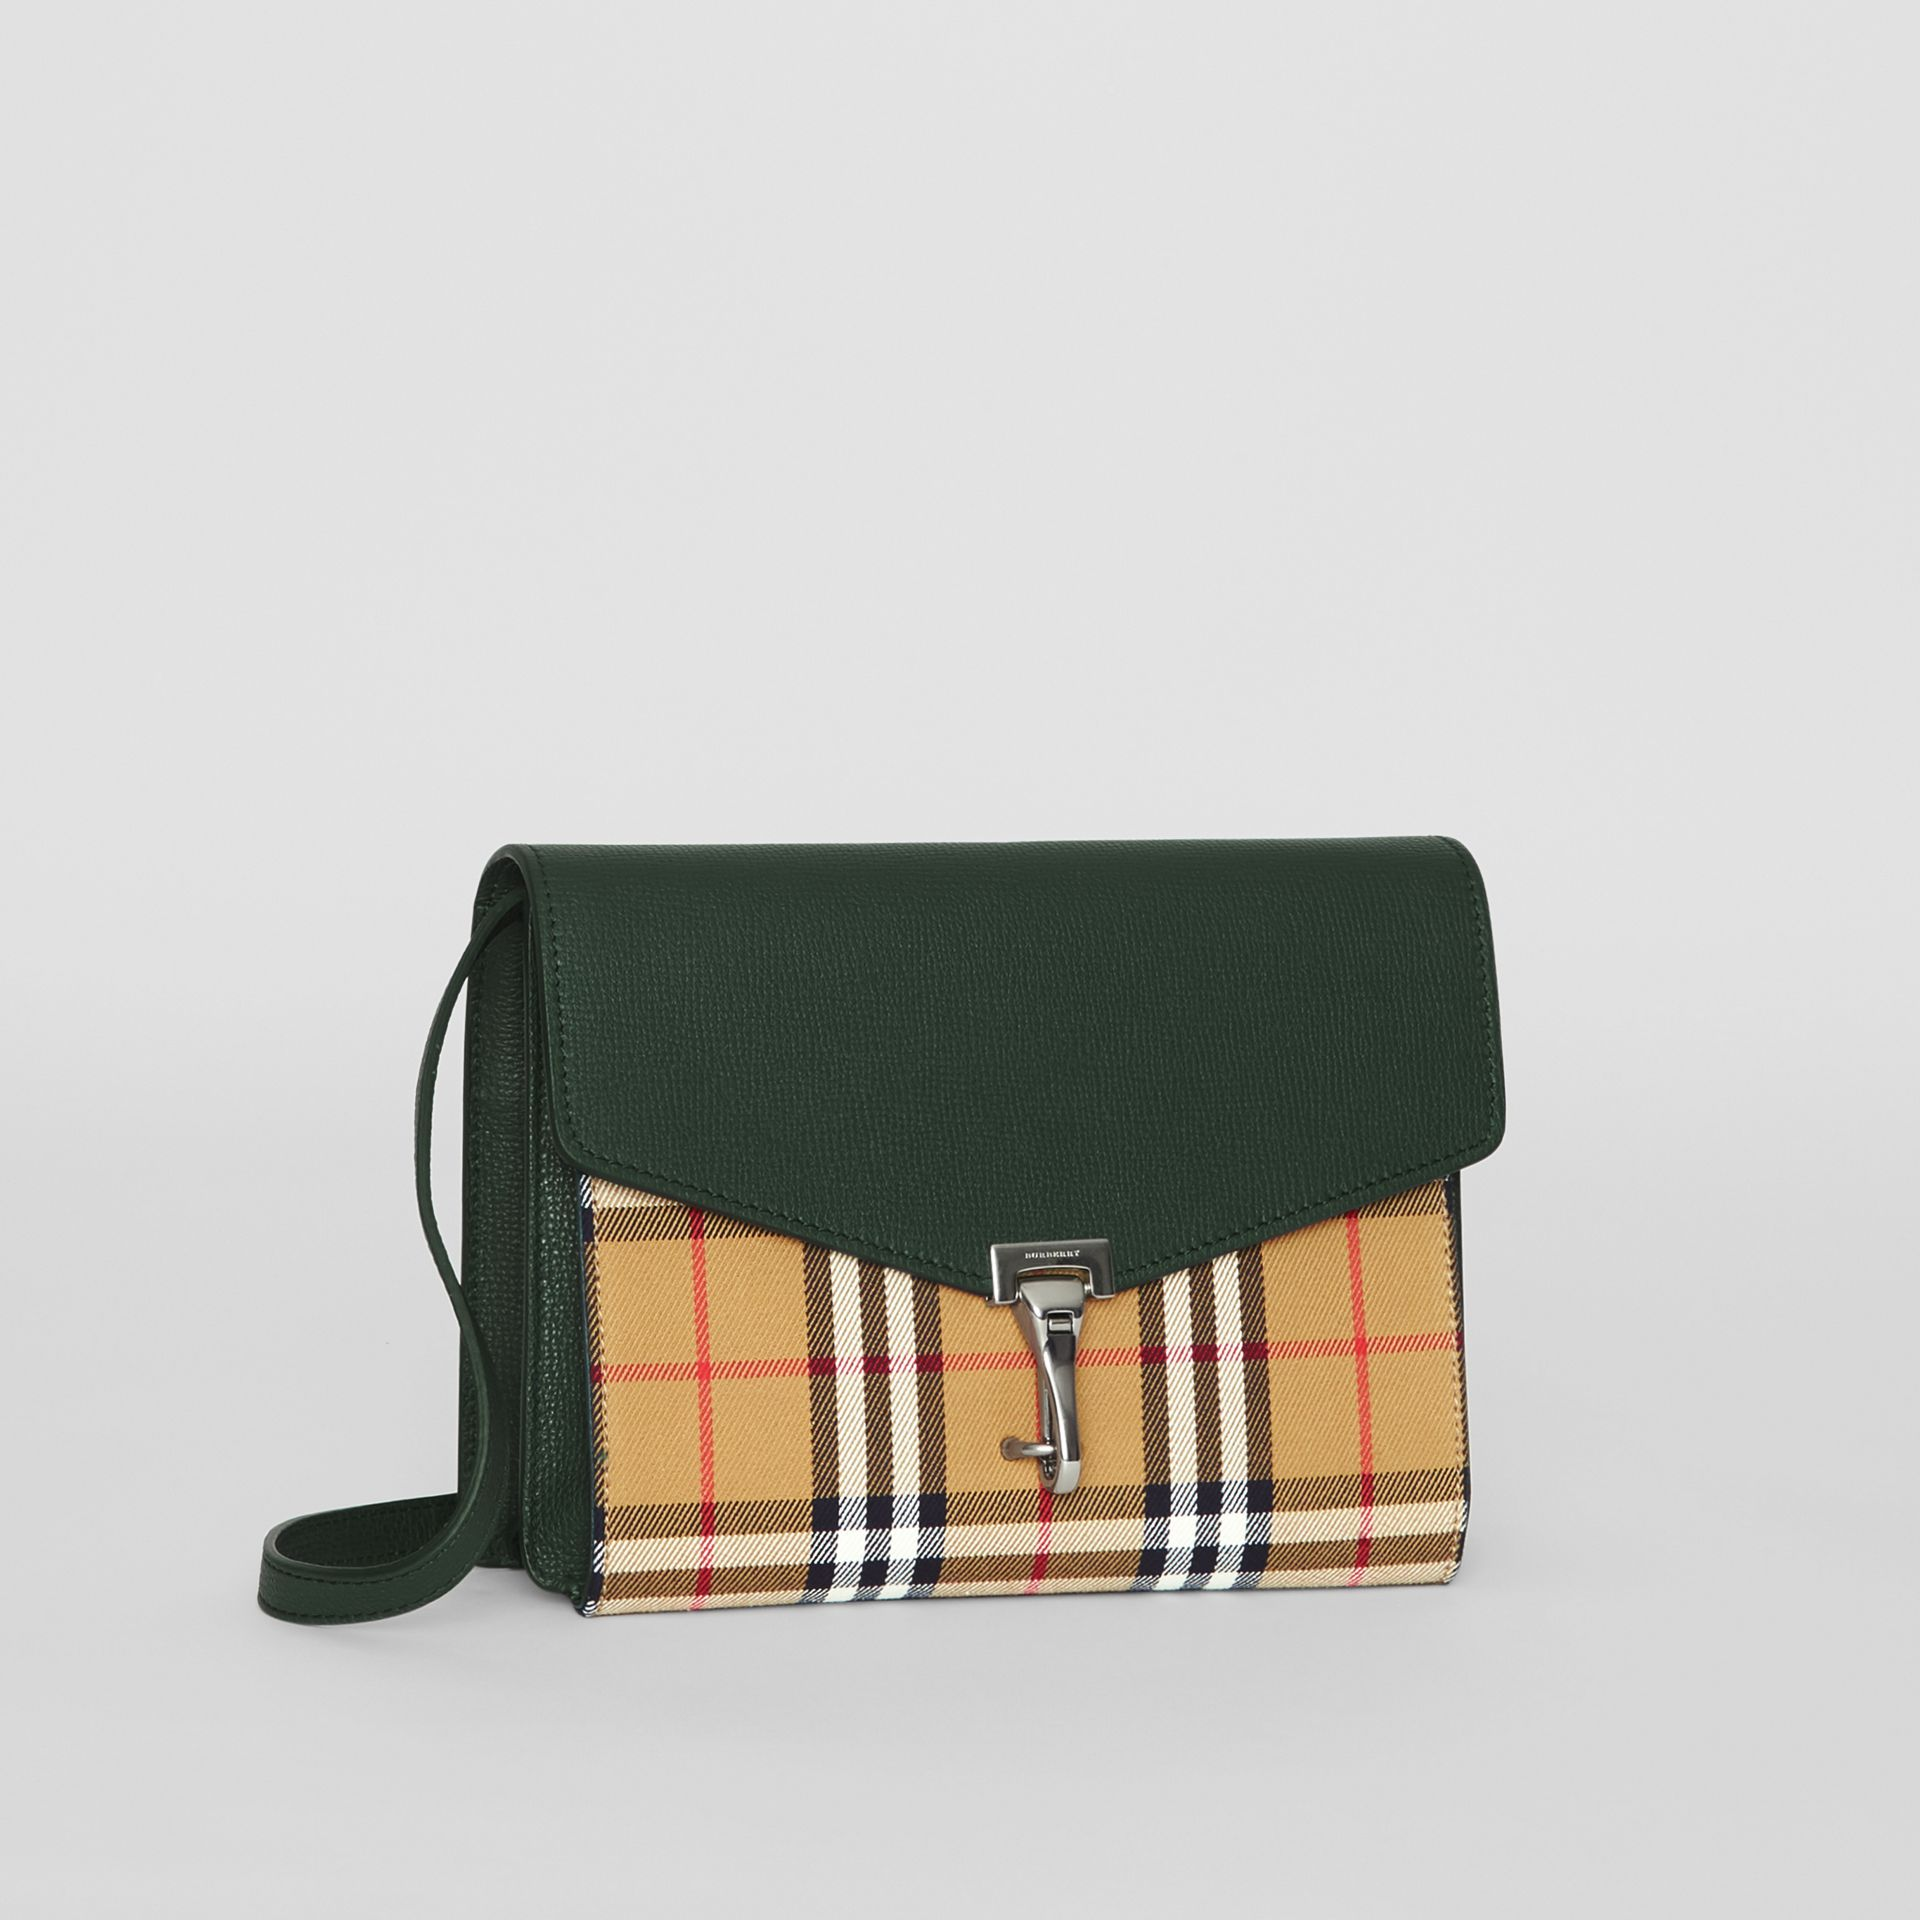 Small Vintage Check and Leather Crossbody Bag in Green - Women | Burberry Canada - gallery image 6